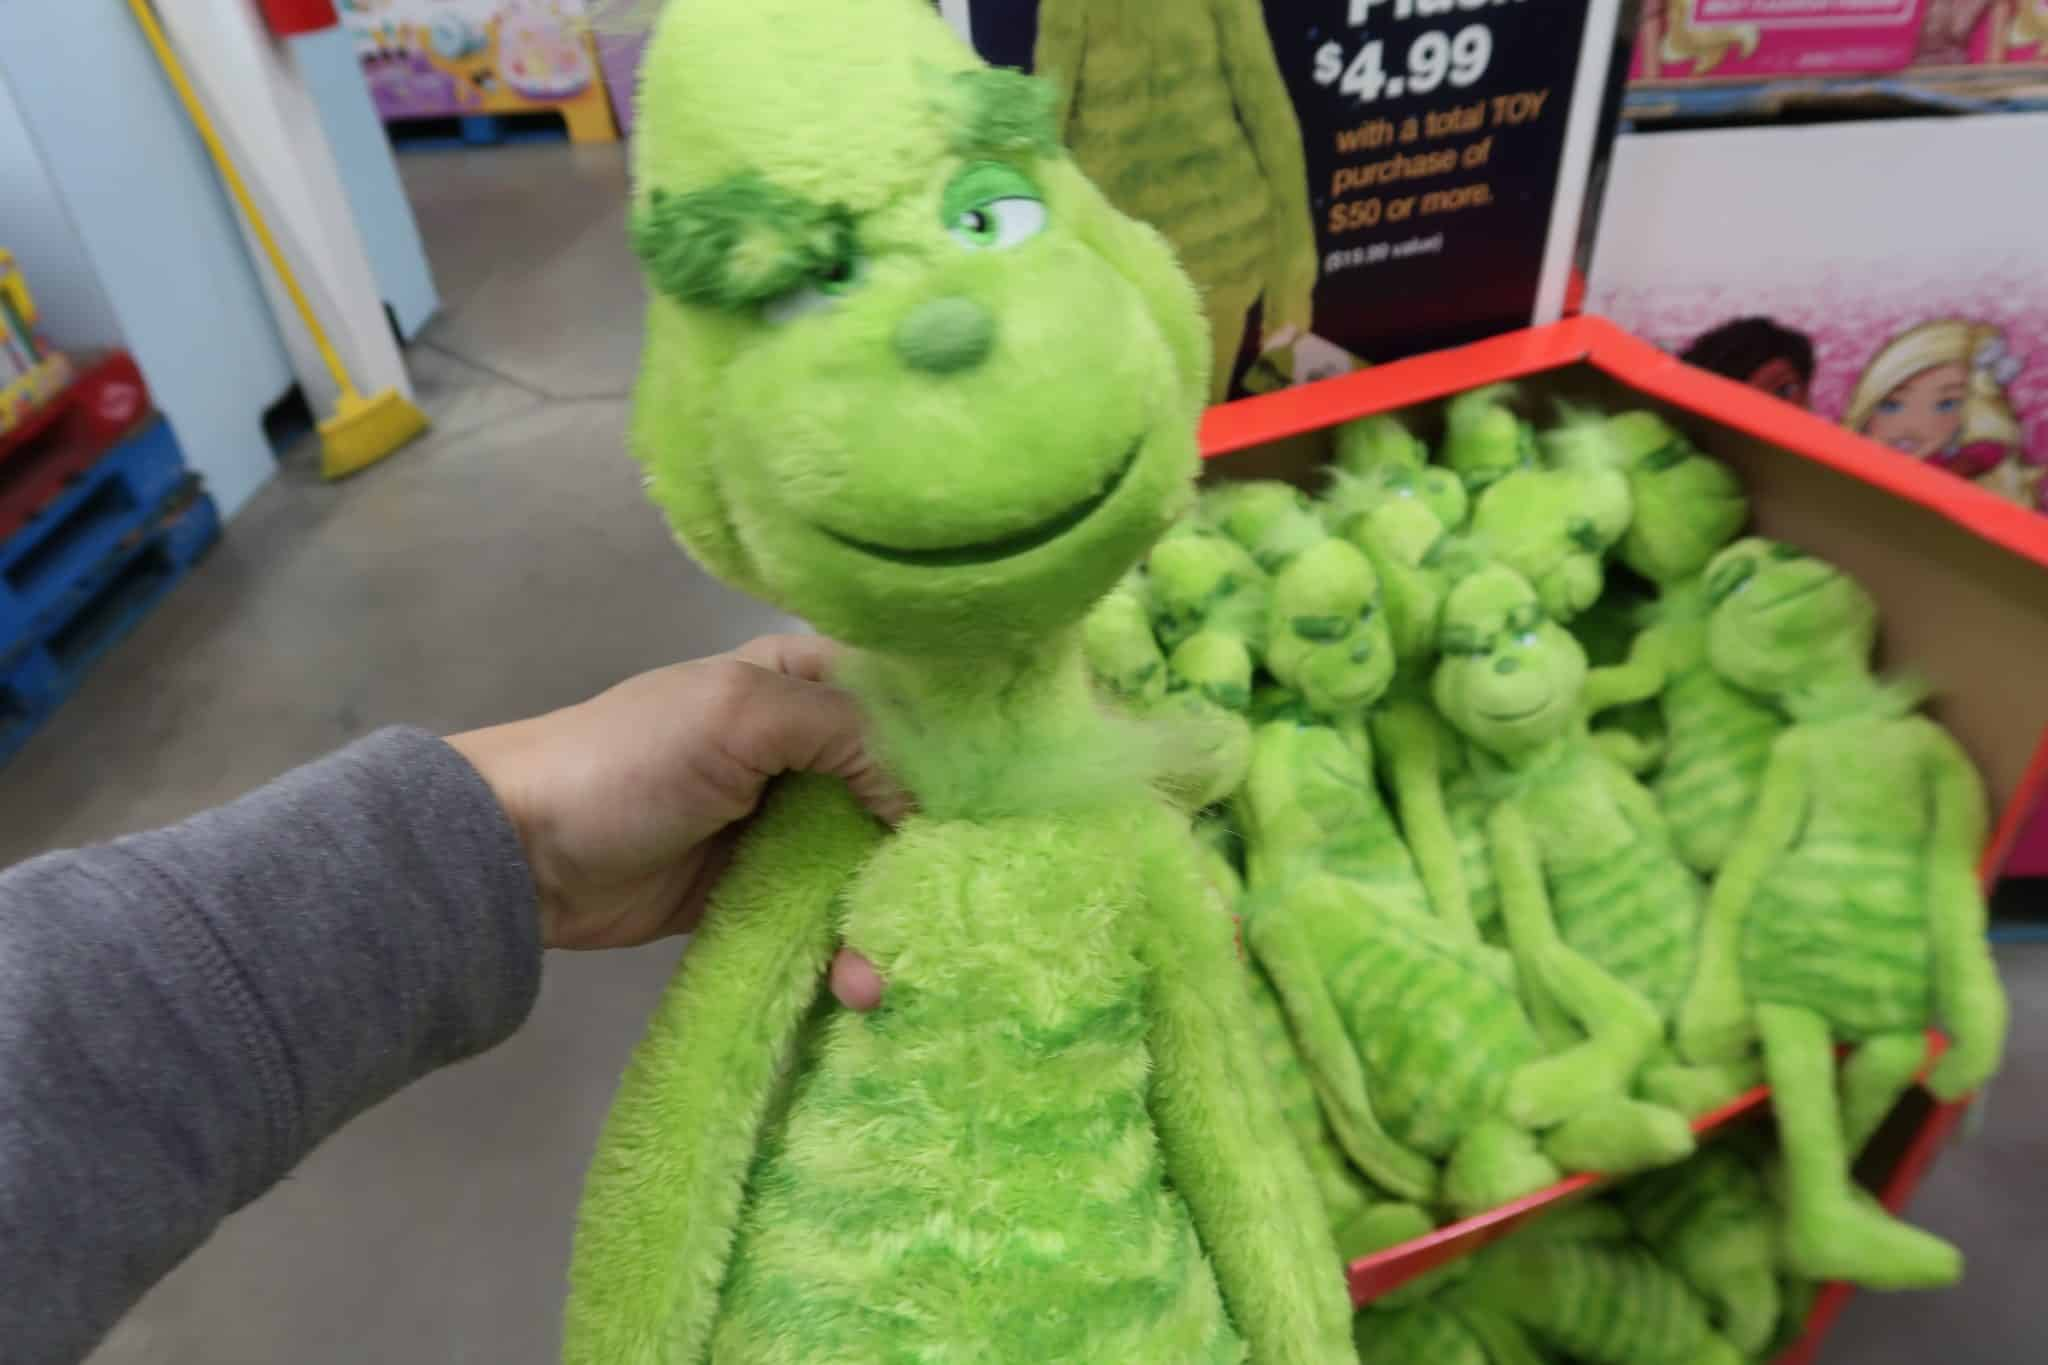 Here's How BJ's Members Can get a Grinch Plush for $4.99